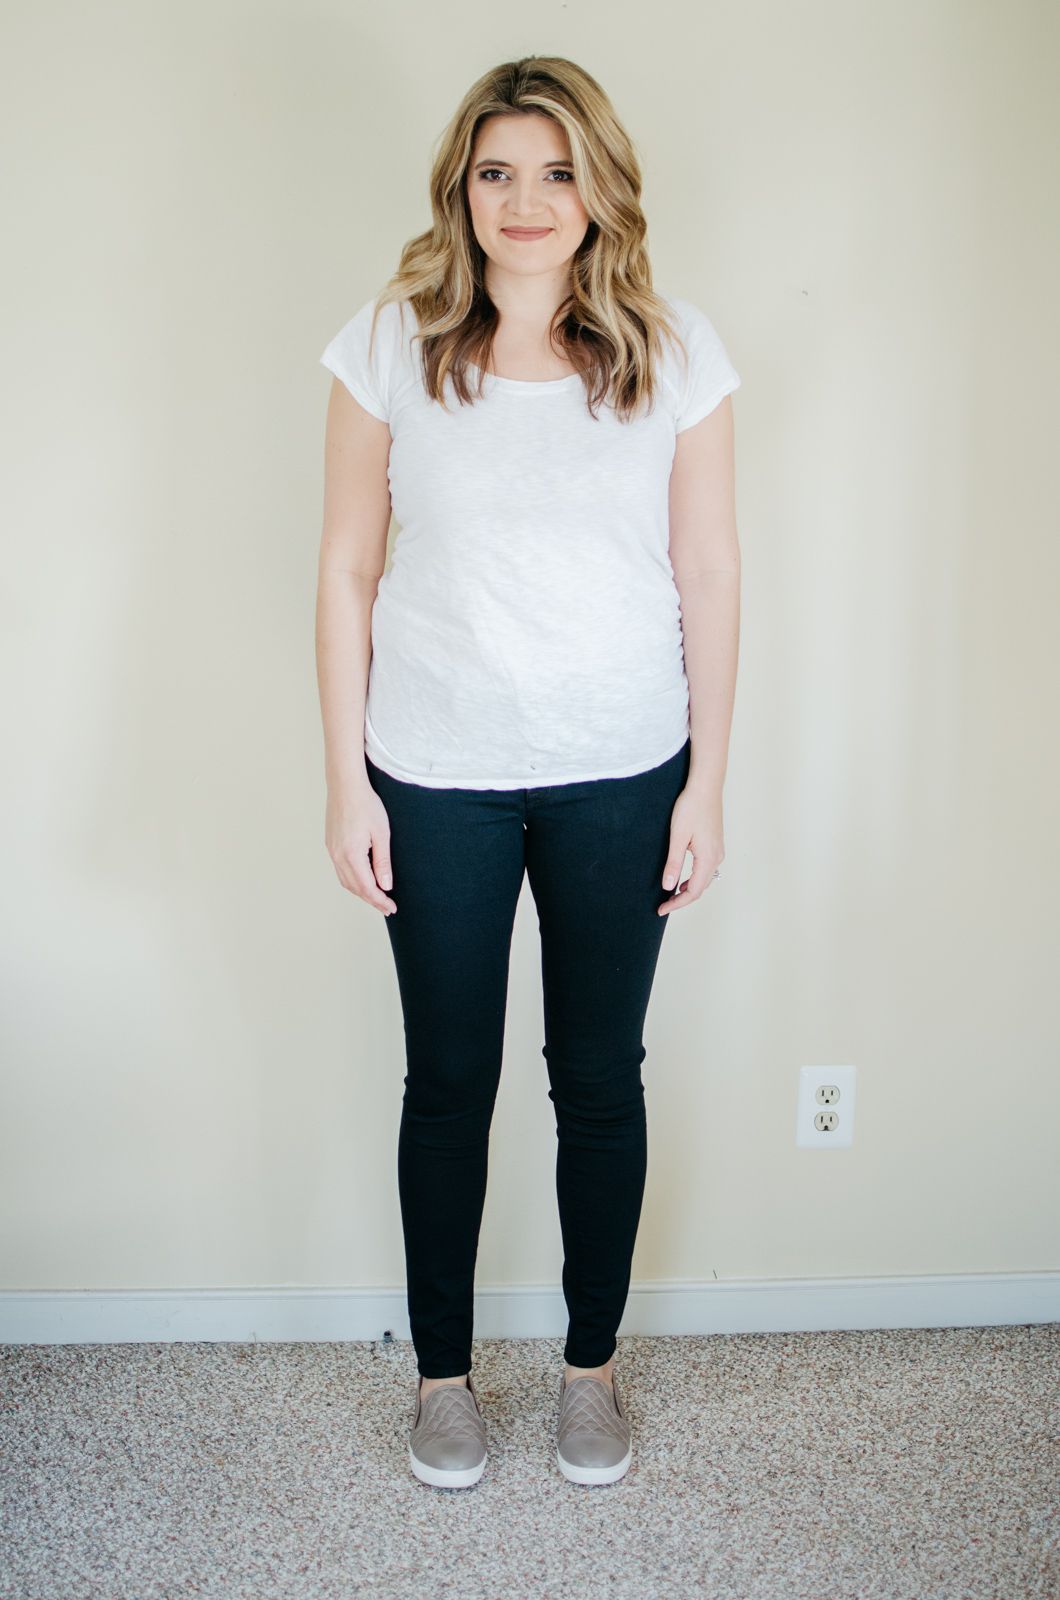 J Brand maternity jeans review - J Brand Mama J skinny jeans | See reviews of over 15 maternity jeans brands by clicking through to this post! | bylaurenm.com